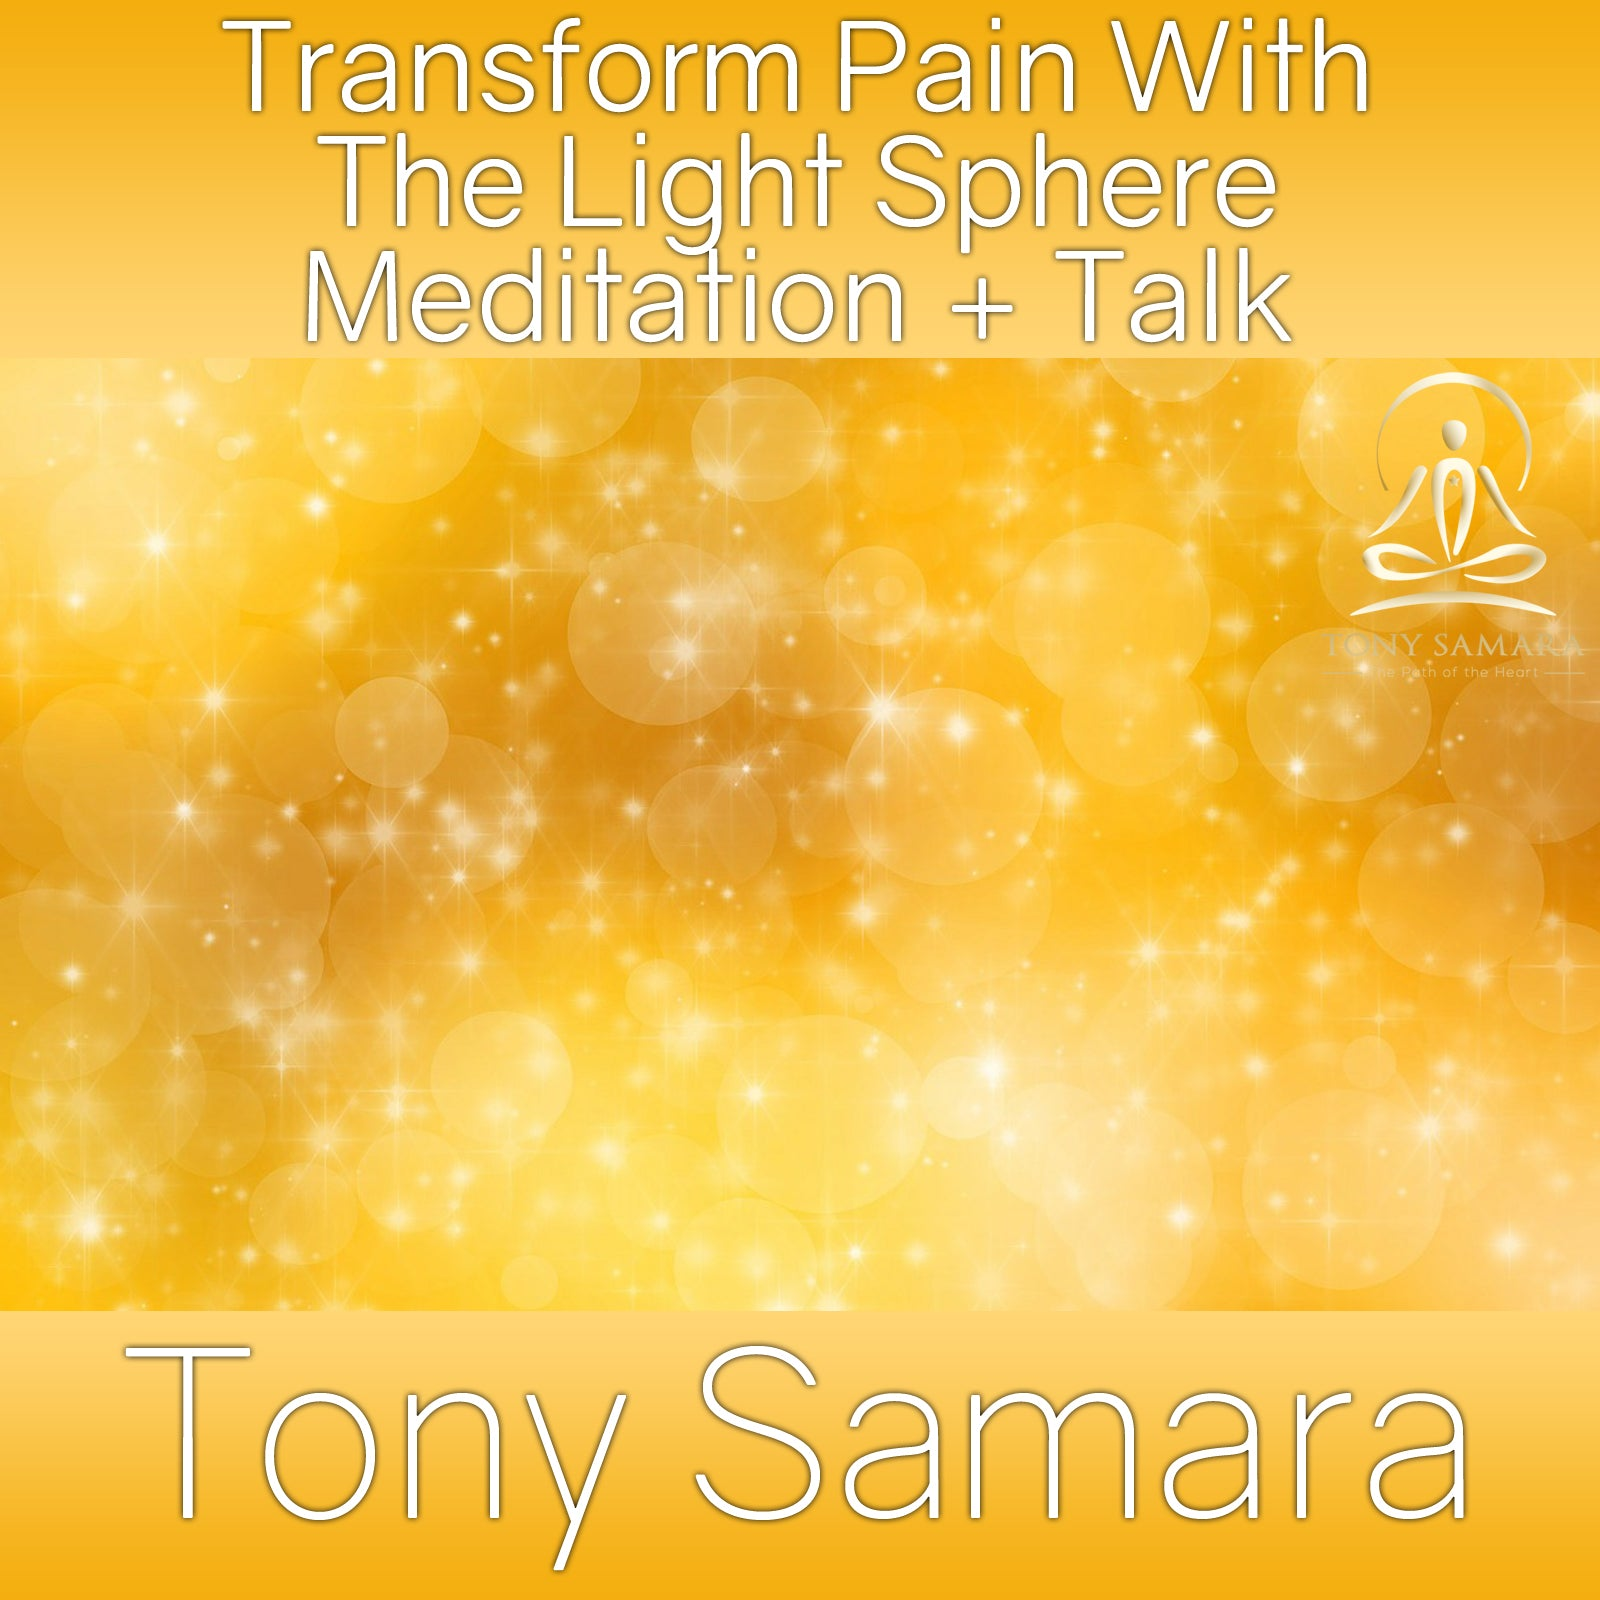 Transform Pain With The Light Sphere Meditation + Talk (MP3 Audio Download) - Tony Samara Meditation